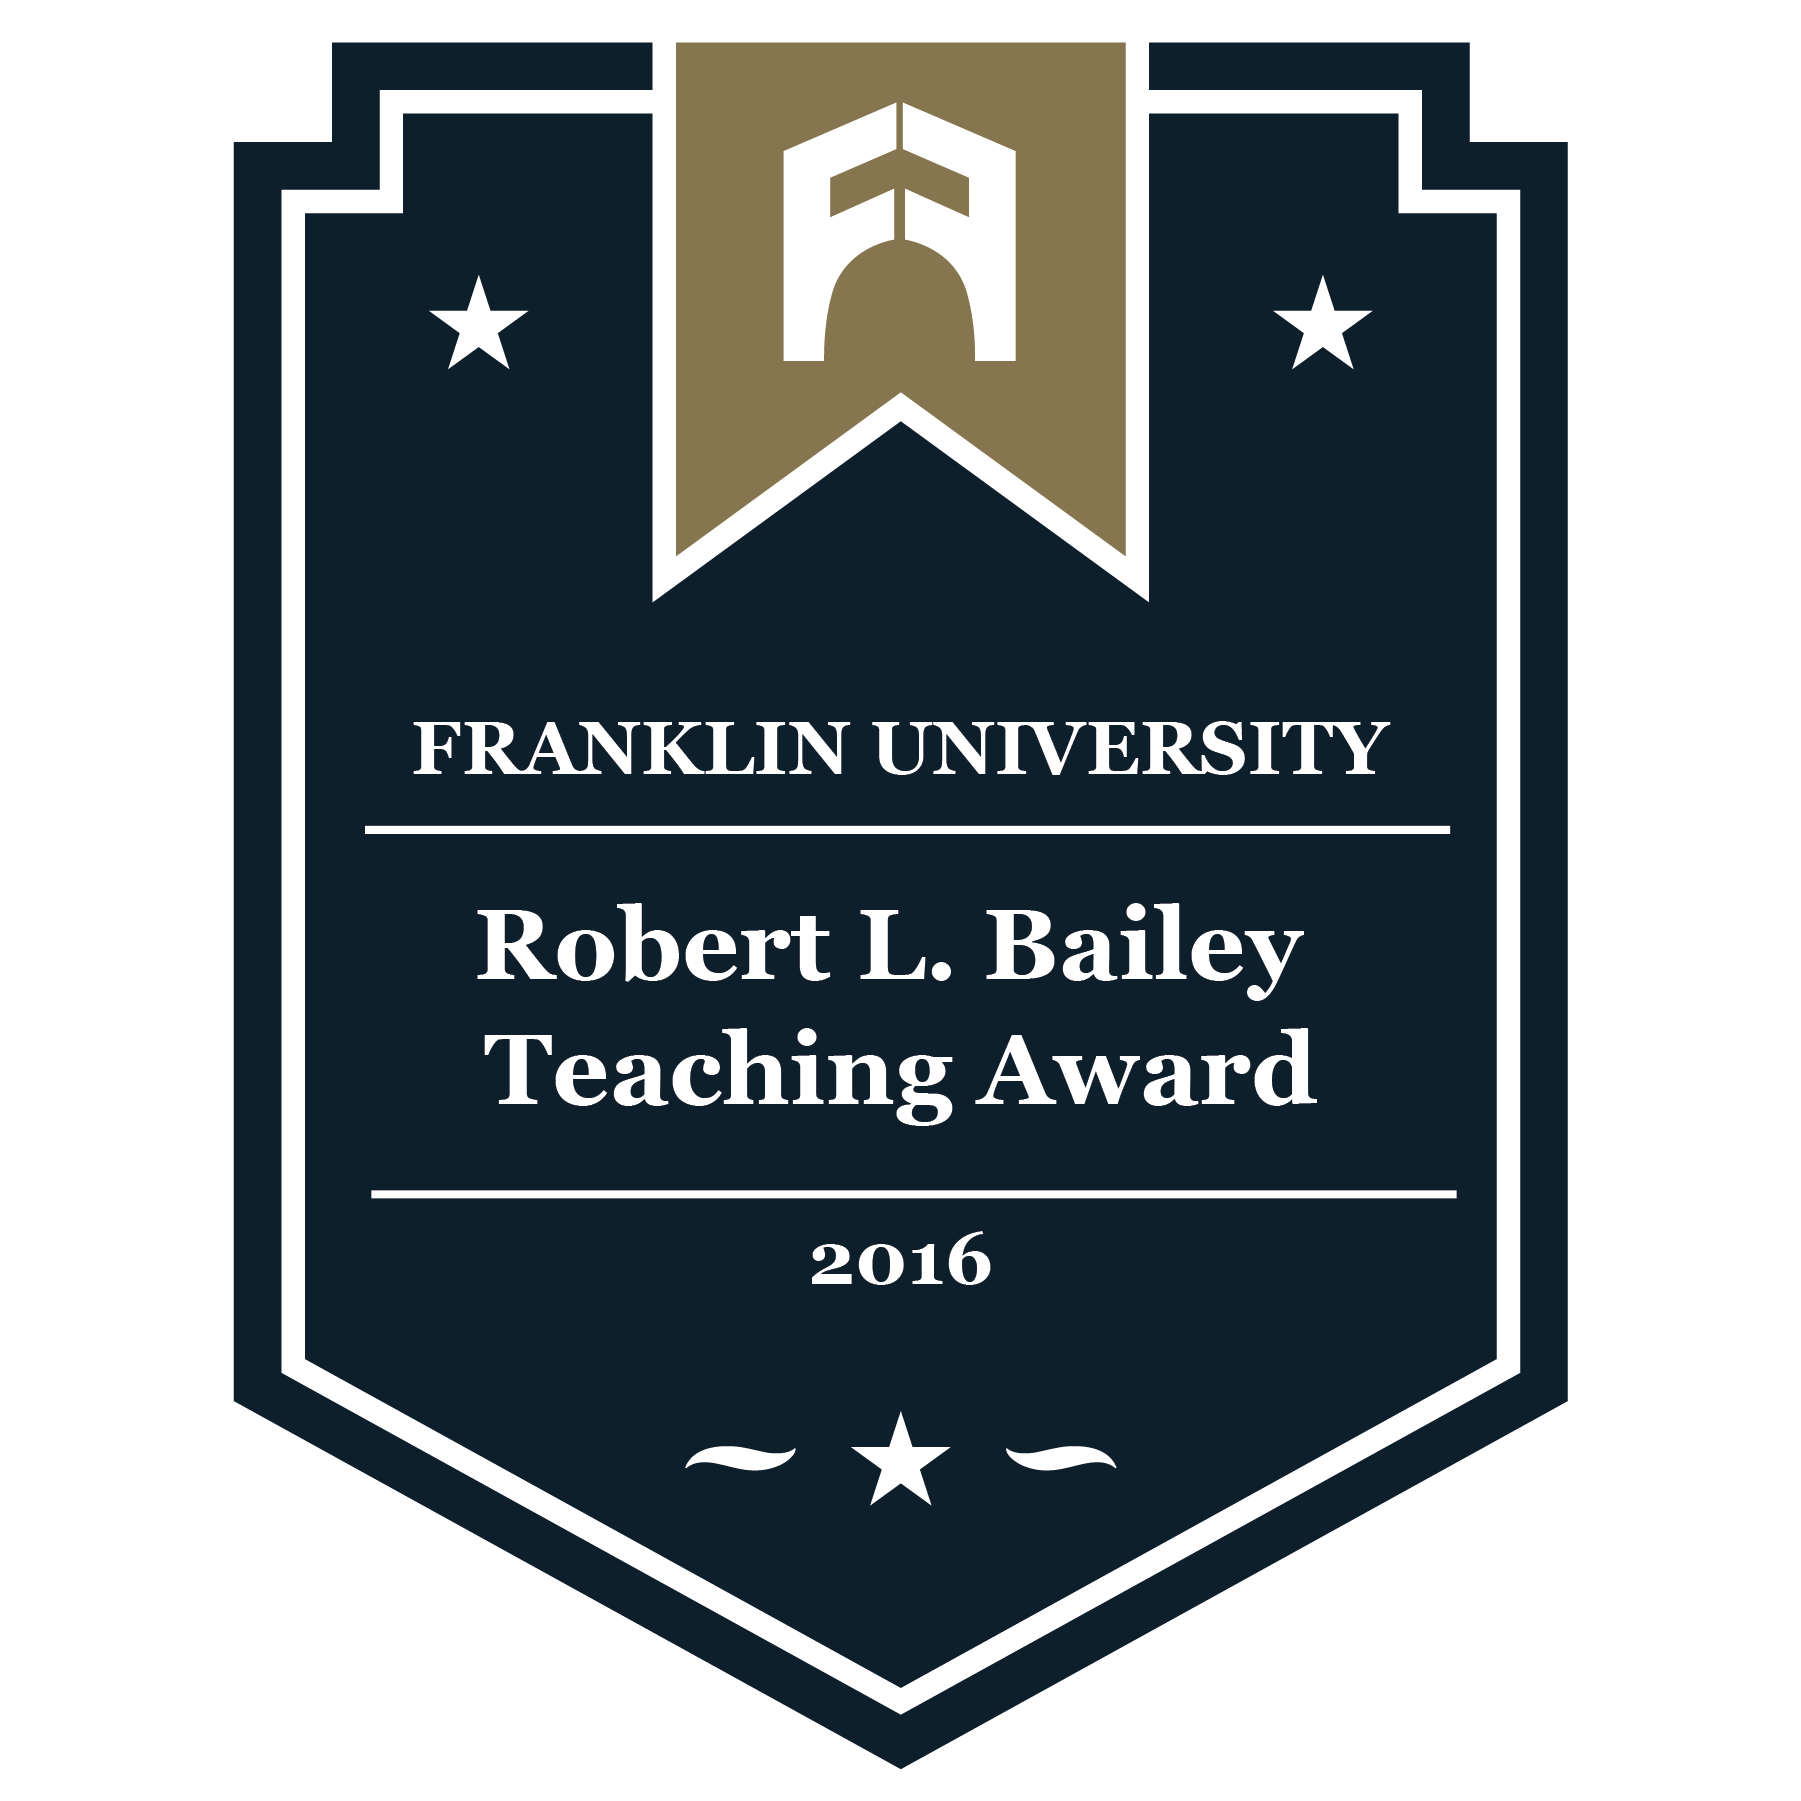 2016 Robert L. Bailey Teaching Award